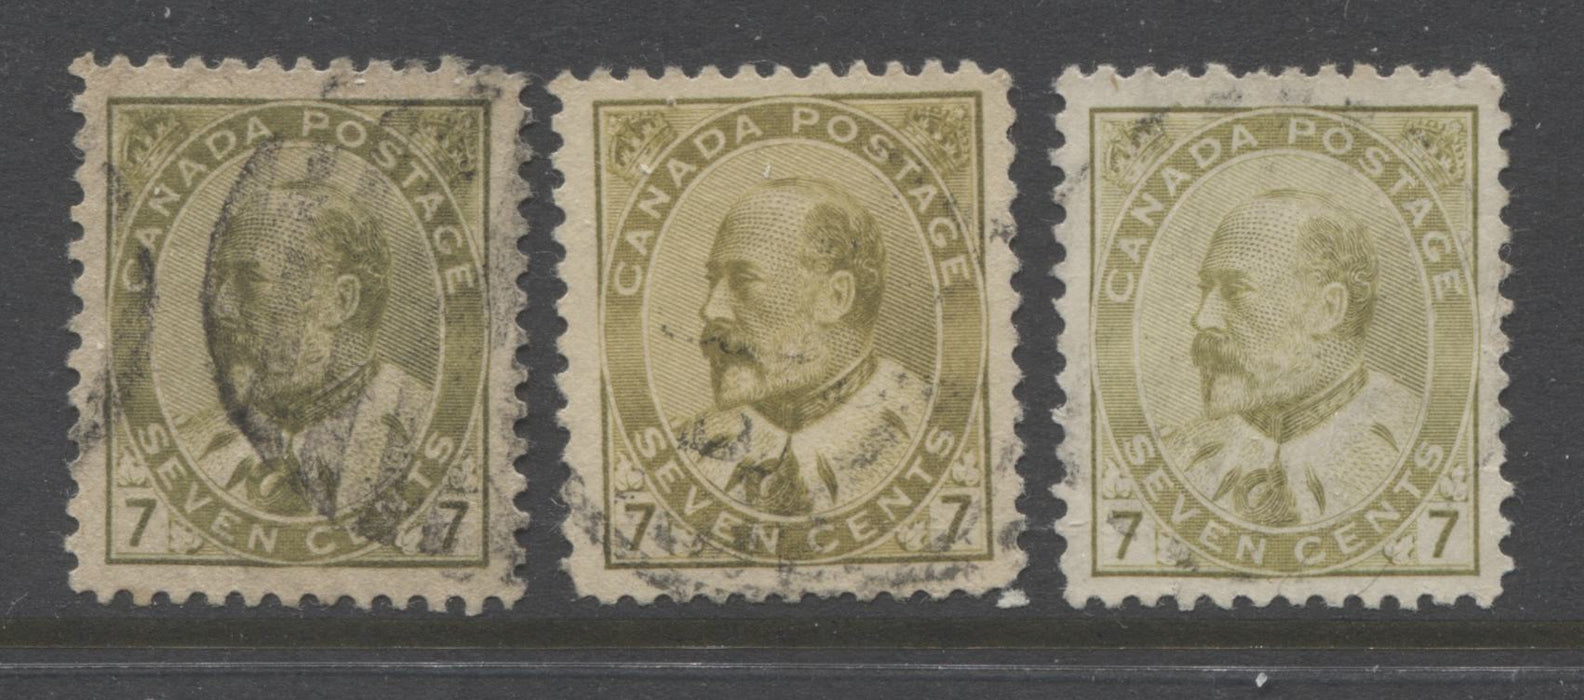 Canada #92-92ii 7c Olive Bistre, Greenish Bistre & Yellow Olive King Edward VII, Very Fine Used Examples of Three Different Shades Brixton Chrome